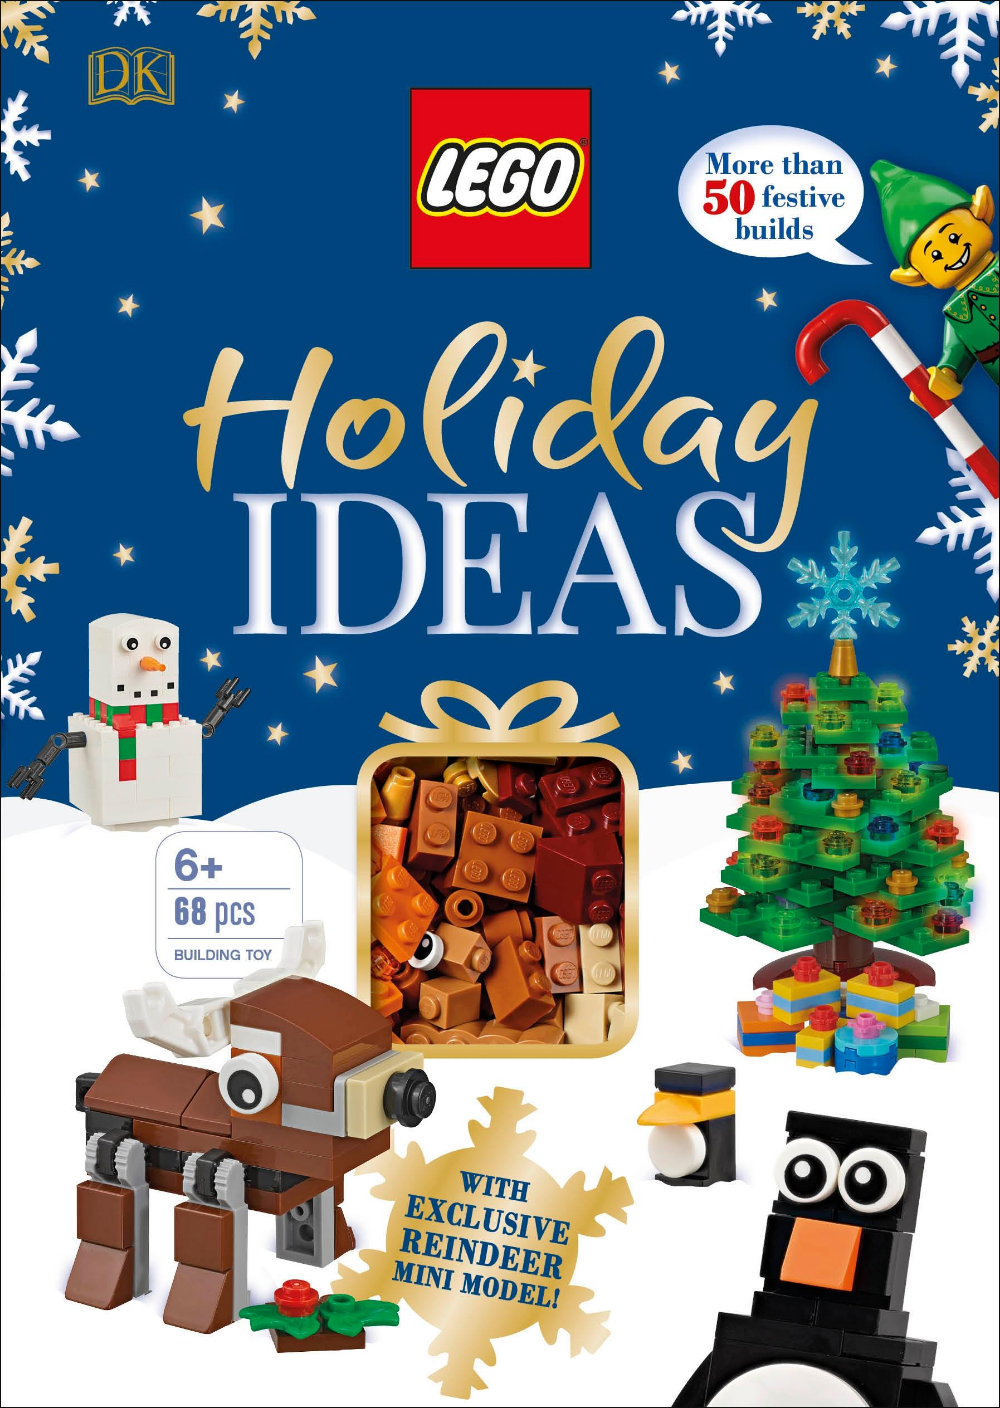 Lego Holiday Ideas More Than 50 Festive Builds Walmart Com In 2020 Lego Christmas Business For Kids Holiday Crafts